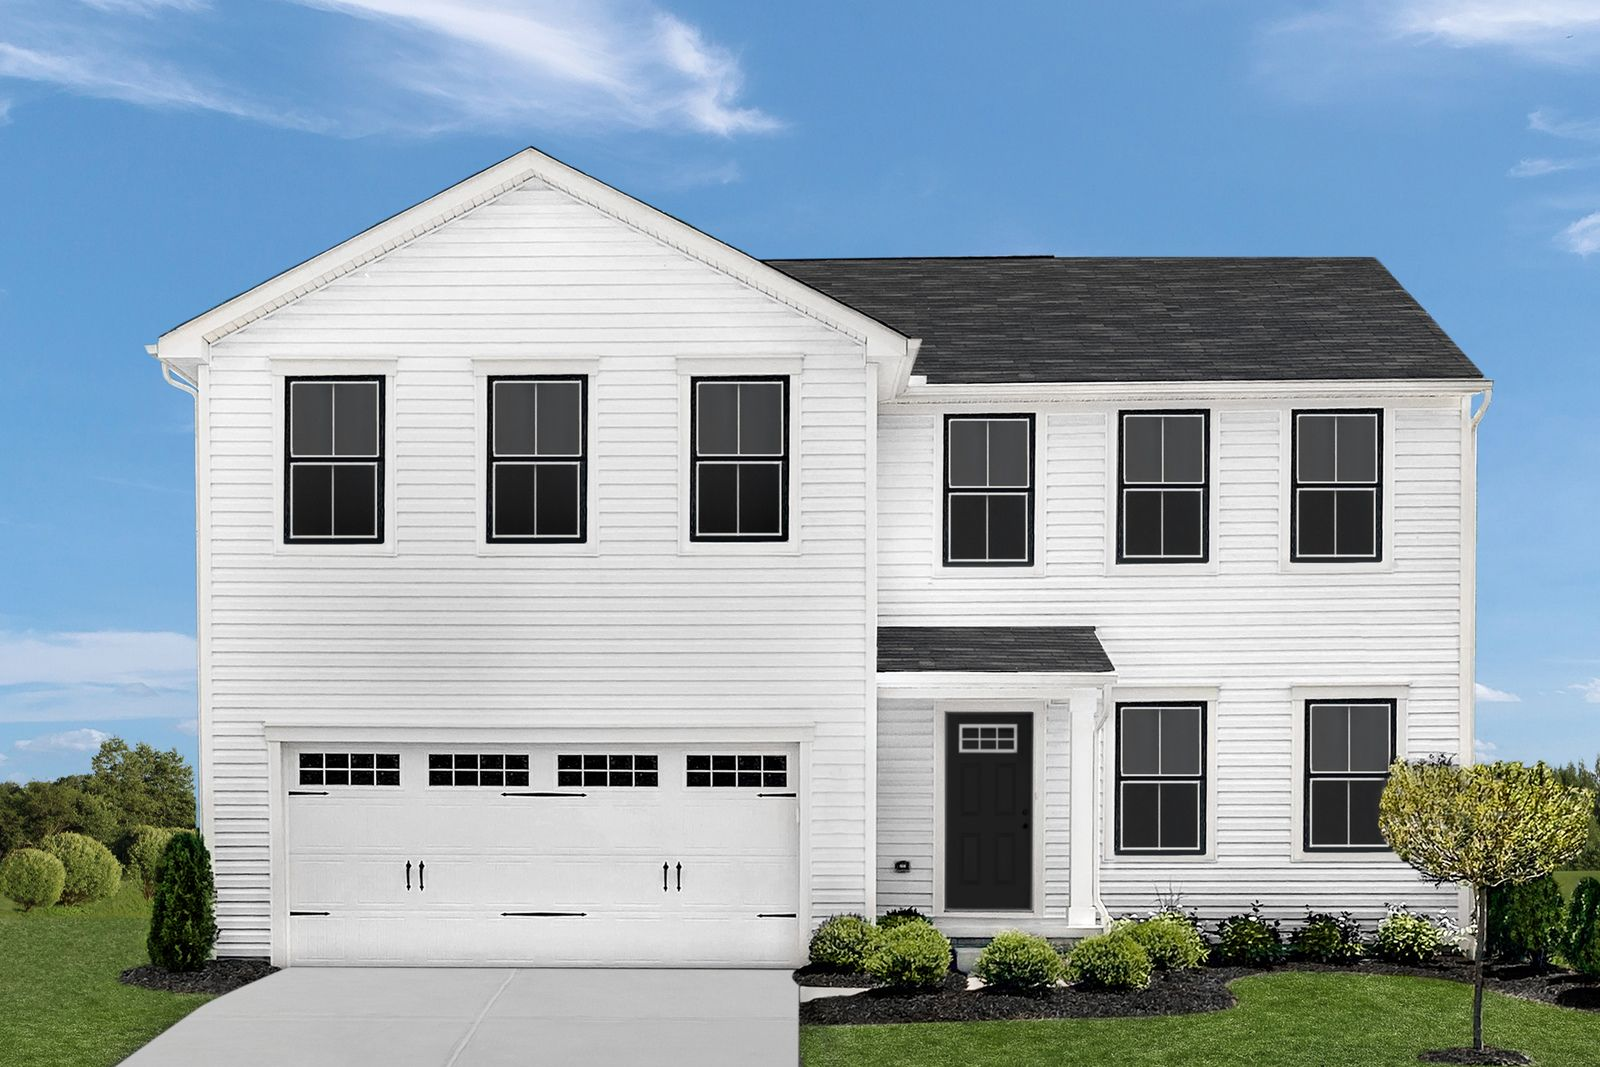 QUAIL RUN MEADOWS – NOW OPEN & SCHEDULING VISITS:Own an affordable, new construction home with a large backyard in a peaceful setting, just 1 mi from I-65 and 20 min from Franklin/Cool Springs.Schedule a visit today!